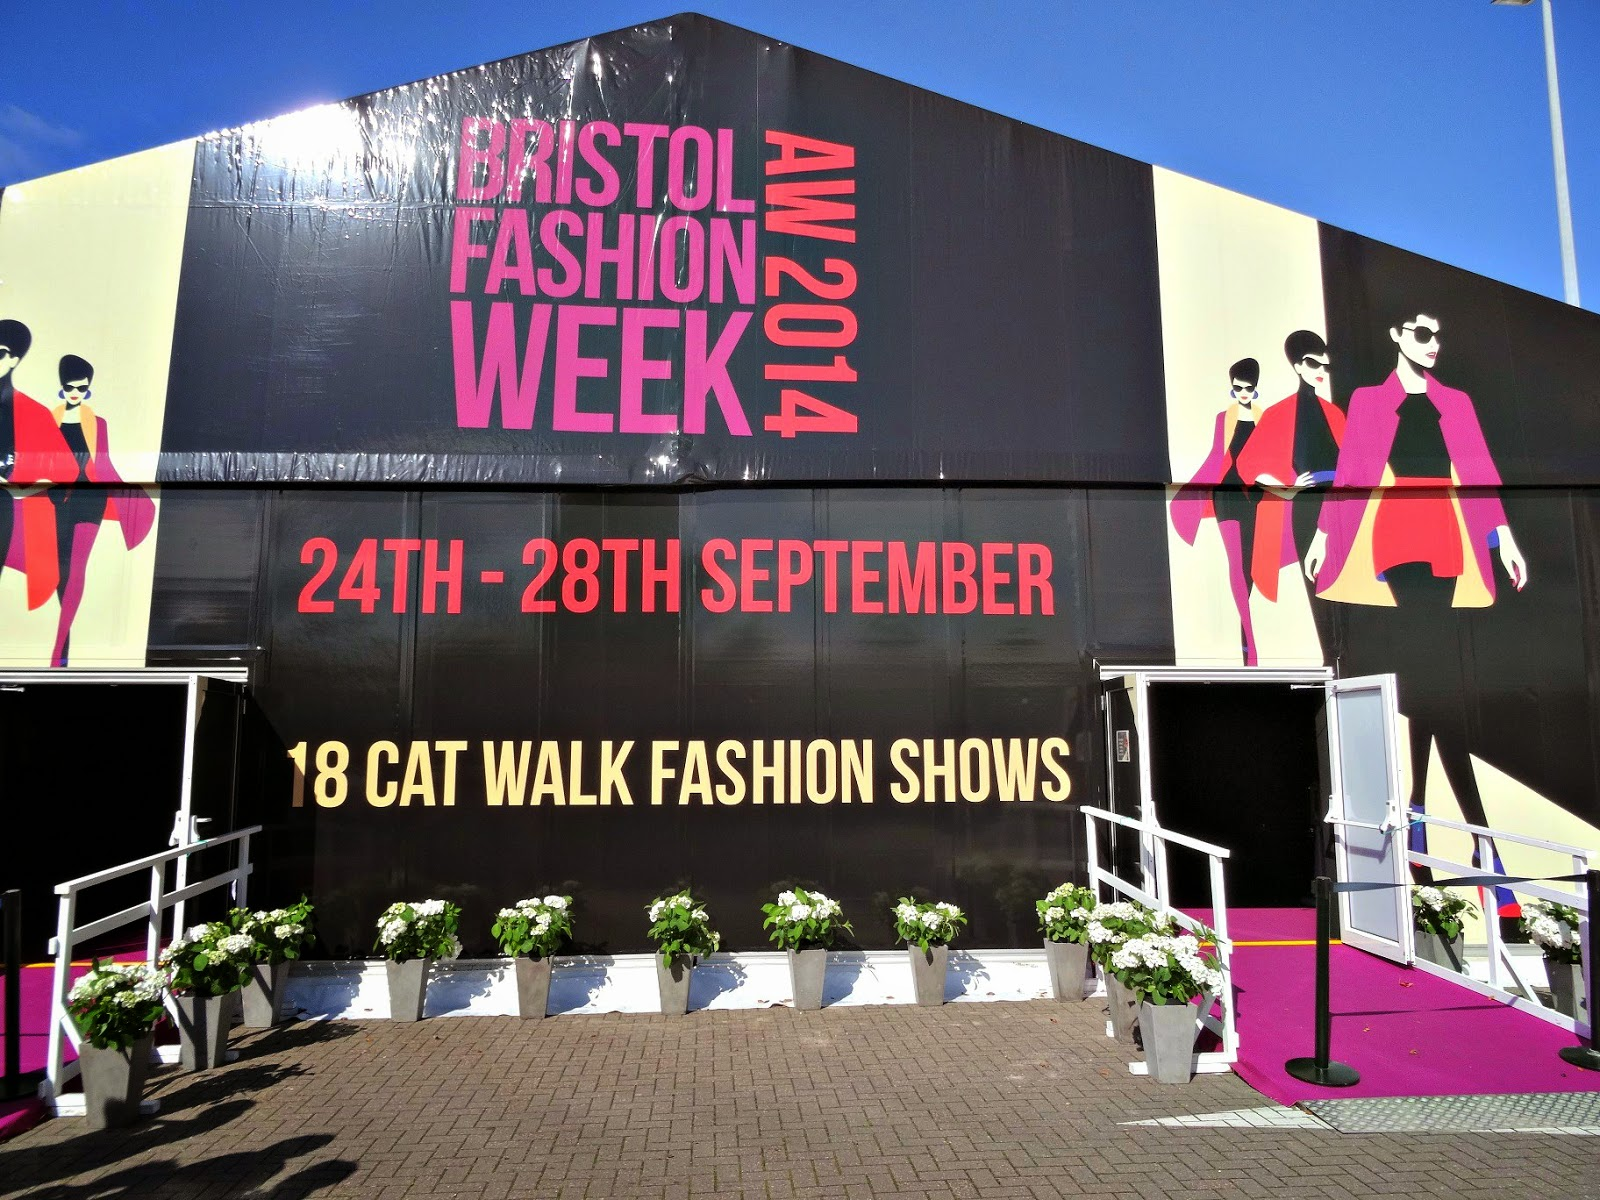 Bristol Fashion Week tent at the mall